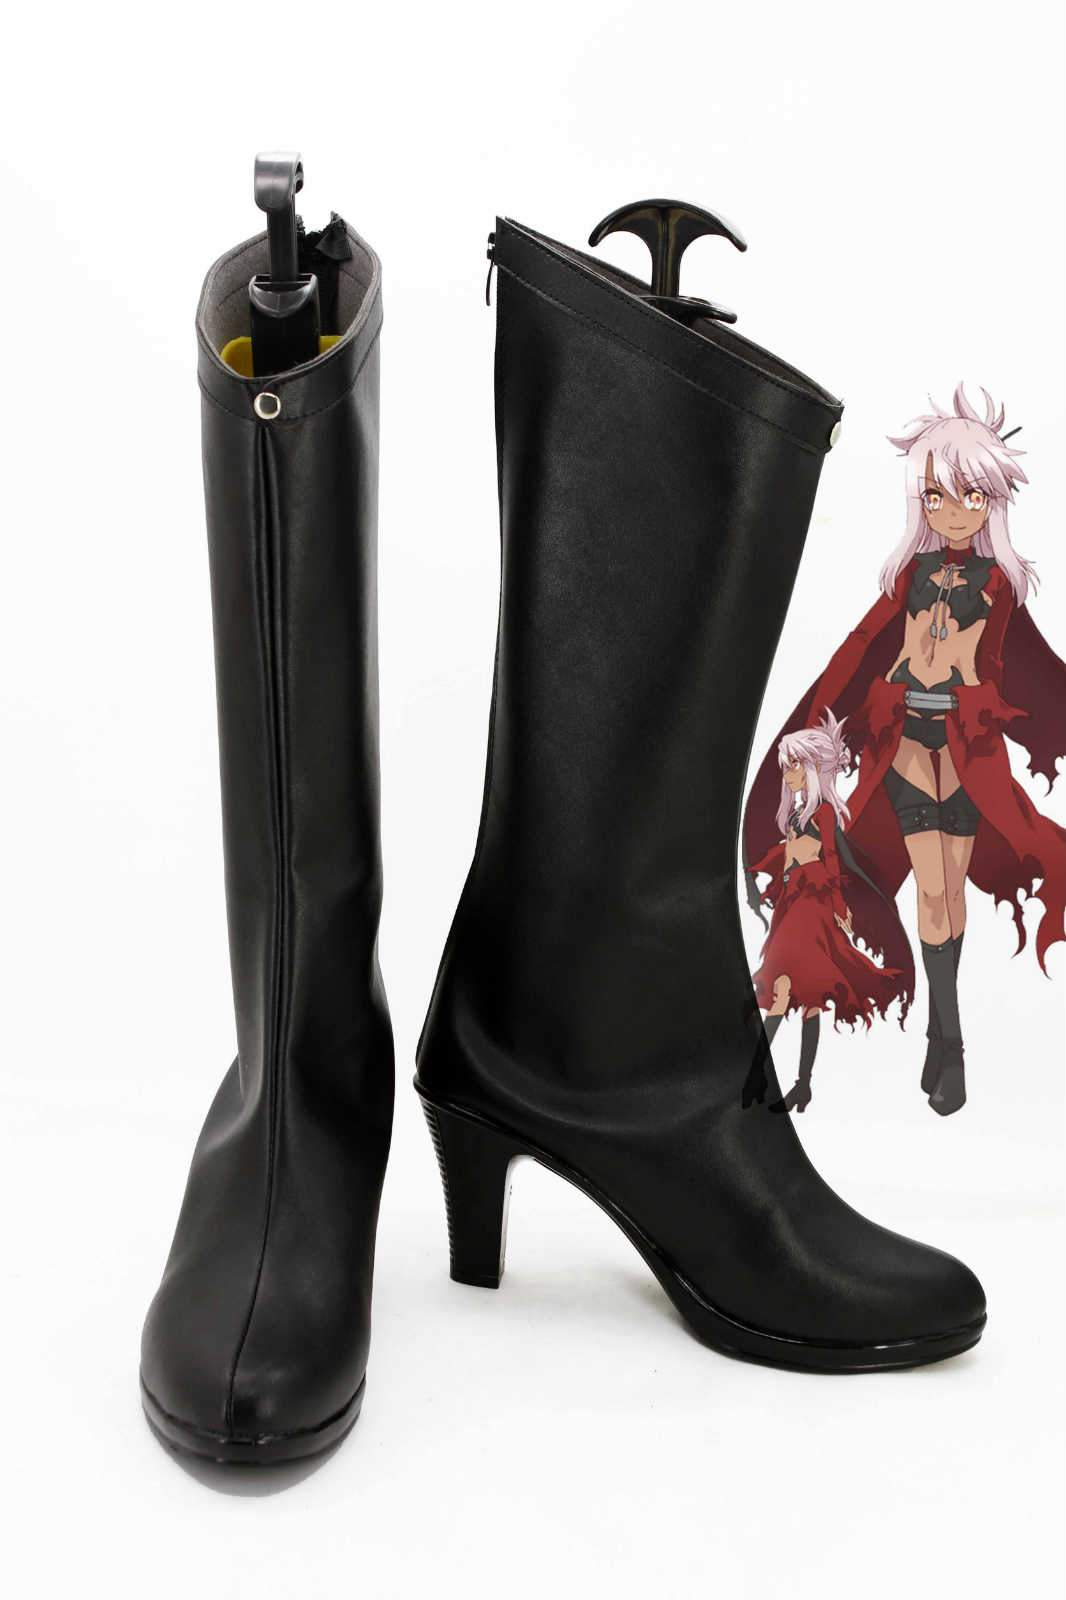 Fate/kaleid liner PRISMA Illya Kuro/Black Boots Cosplay Shoes